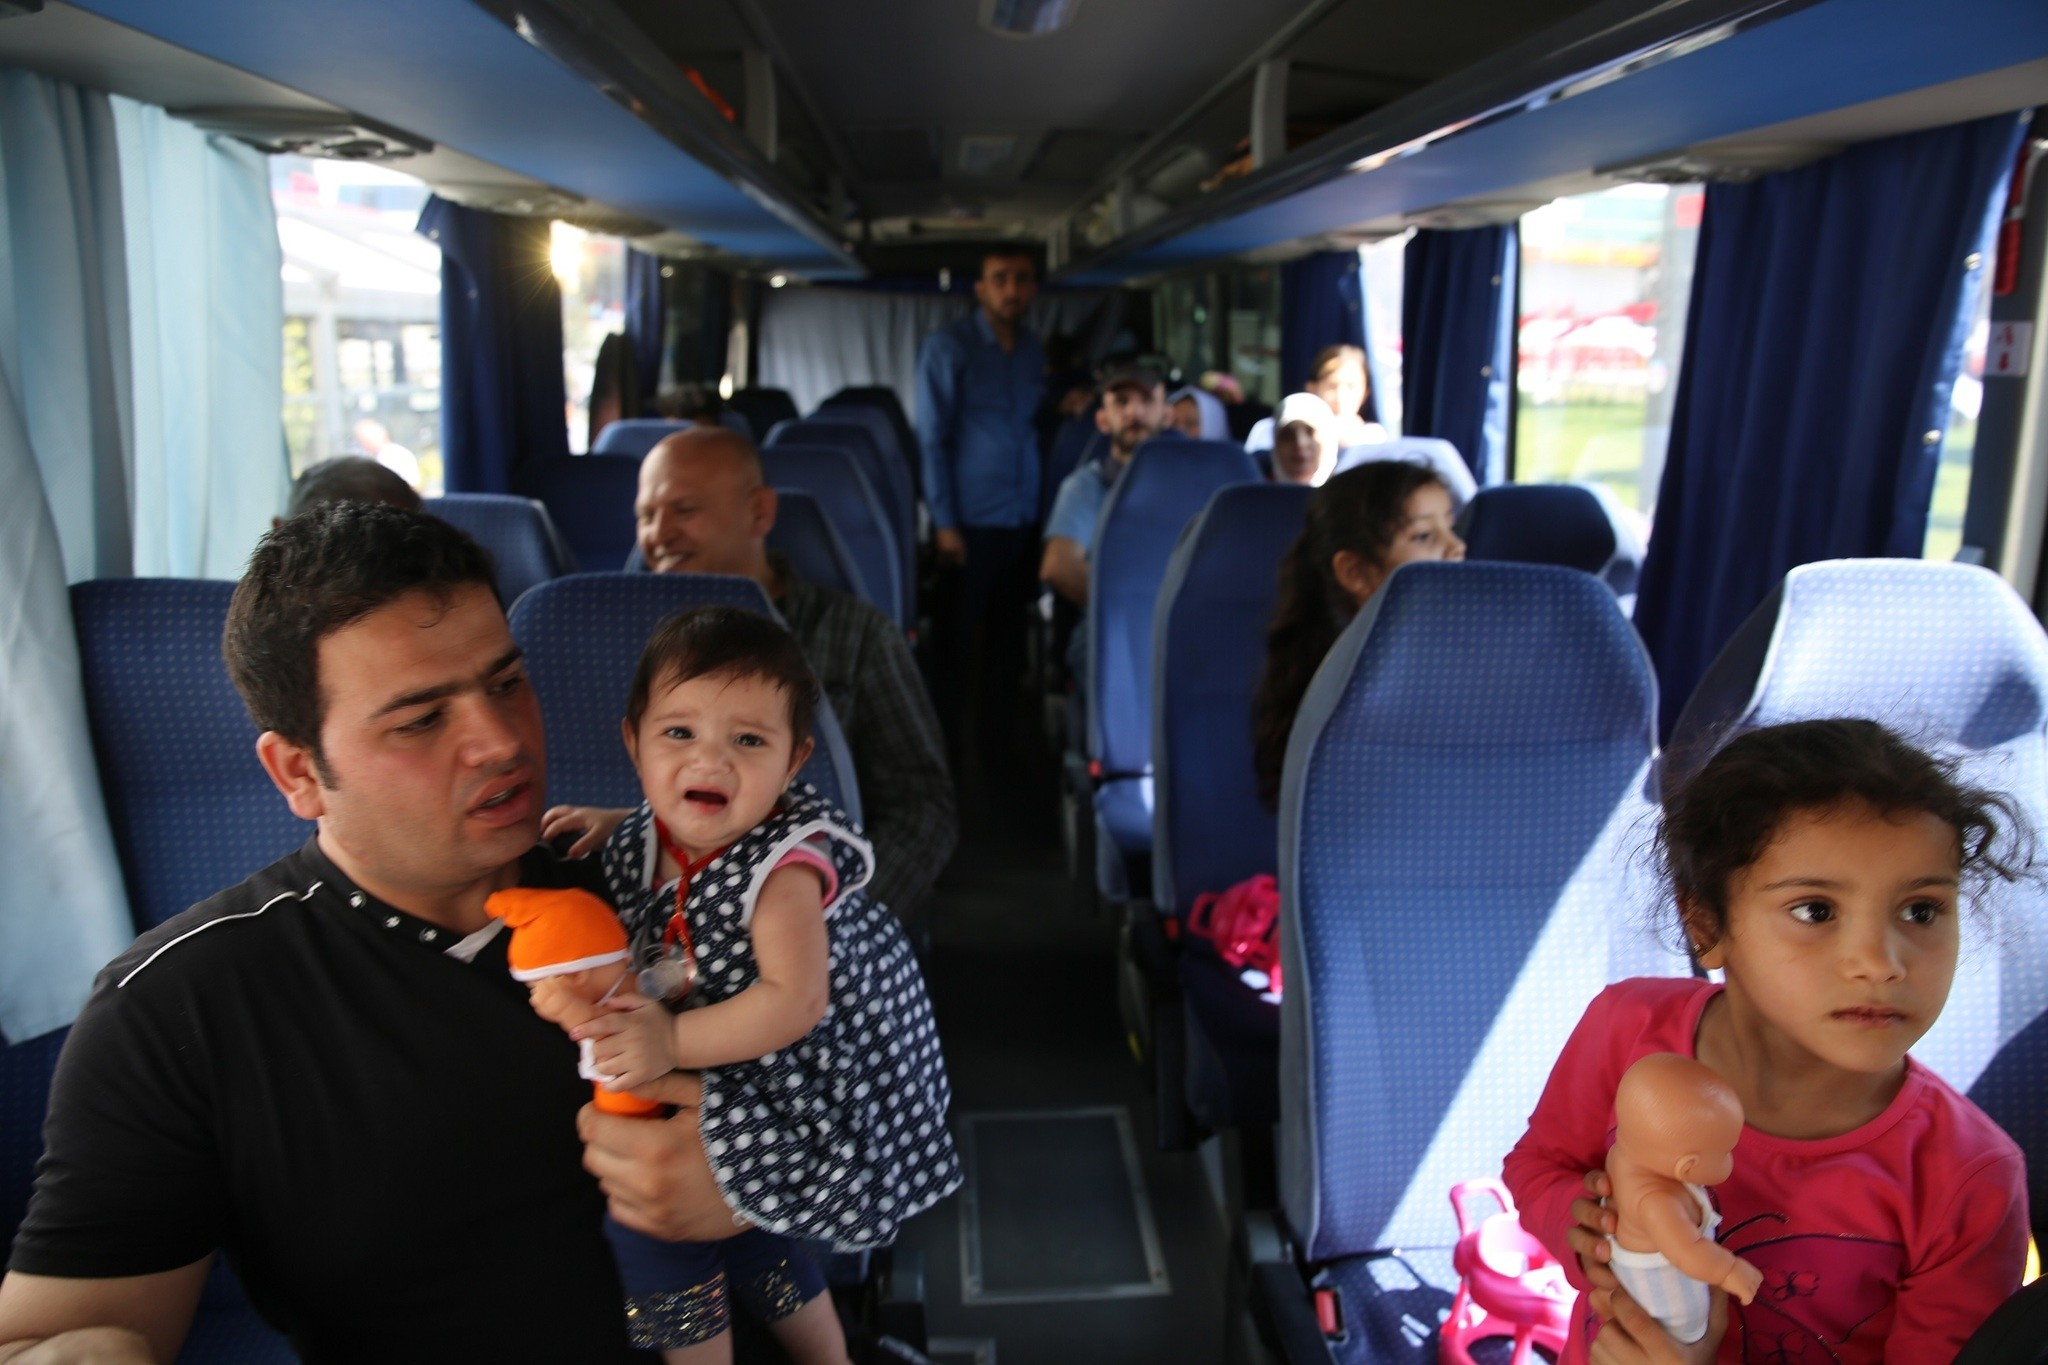 Syrians aboard a bus in Esenyurt traveling to the u00d6ncu00fcpu0131nar border crossing.